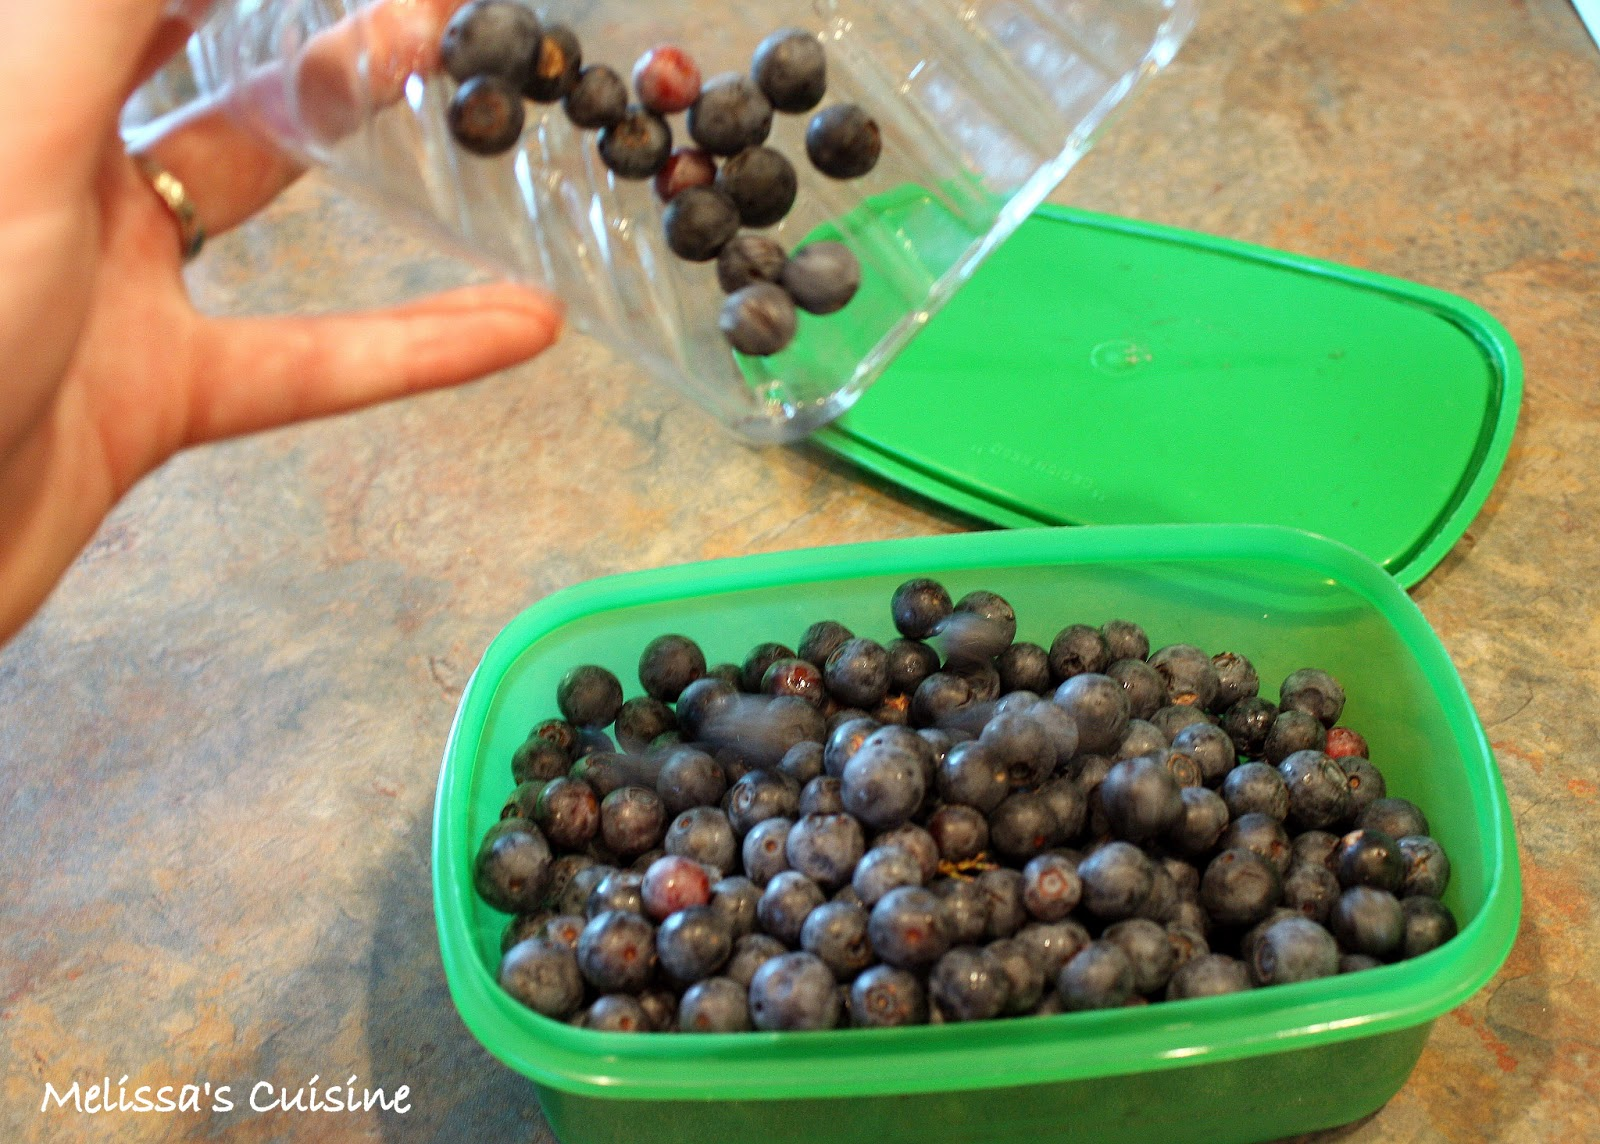 Melissa's Cuisine: Blueberries: Tips and Tricks